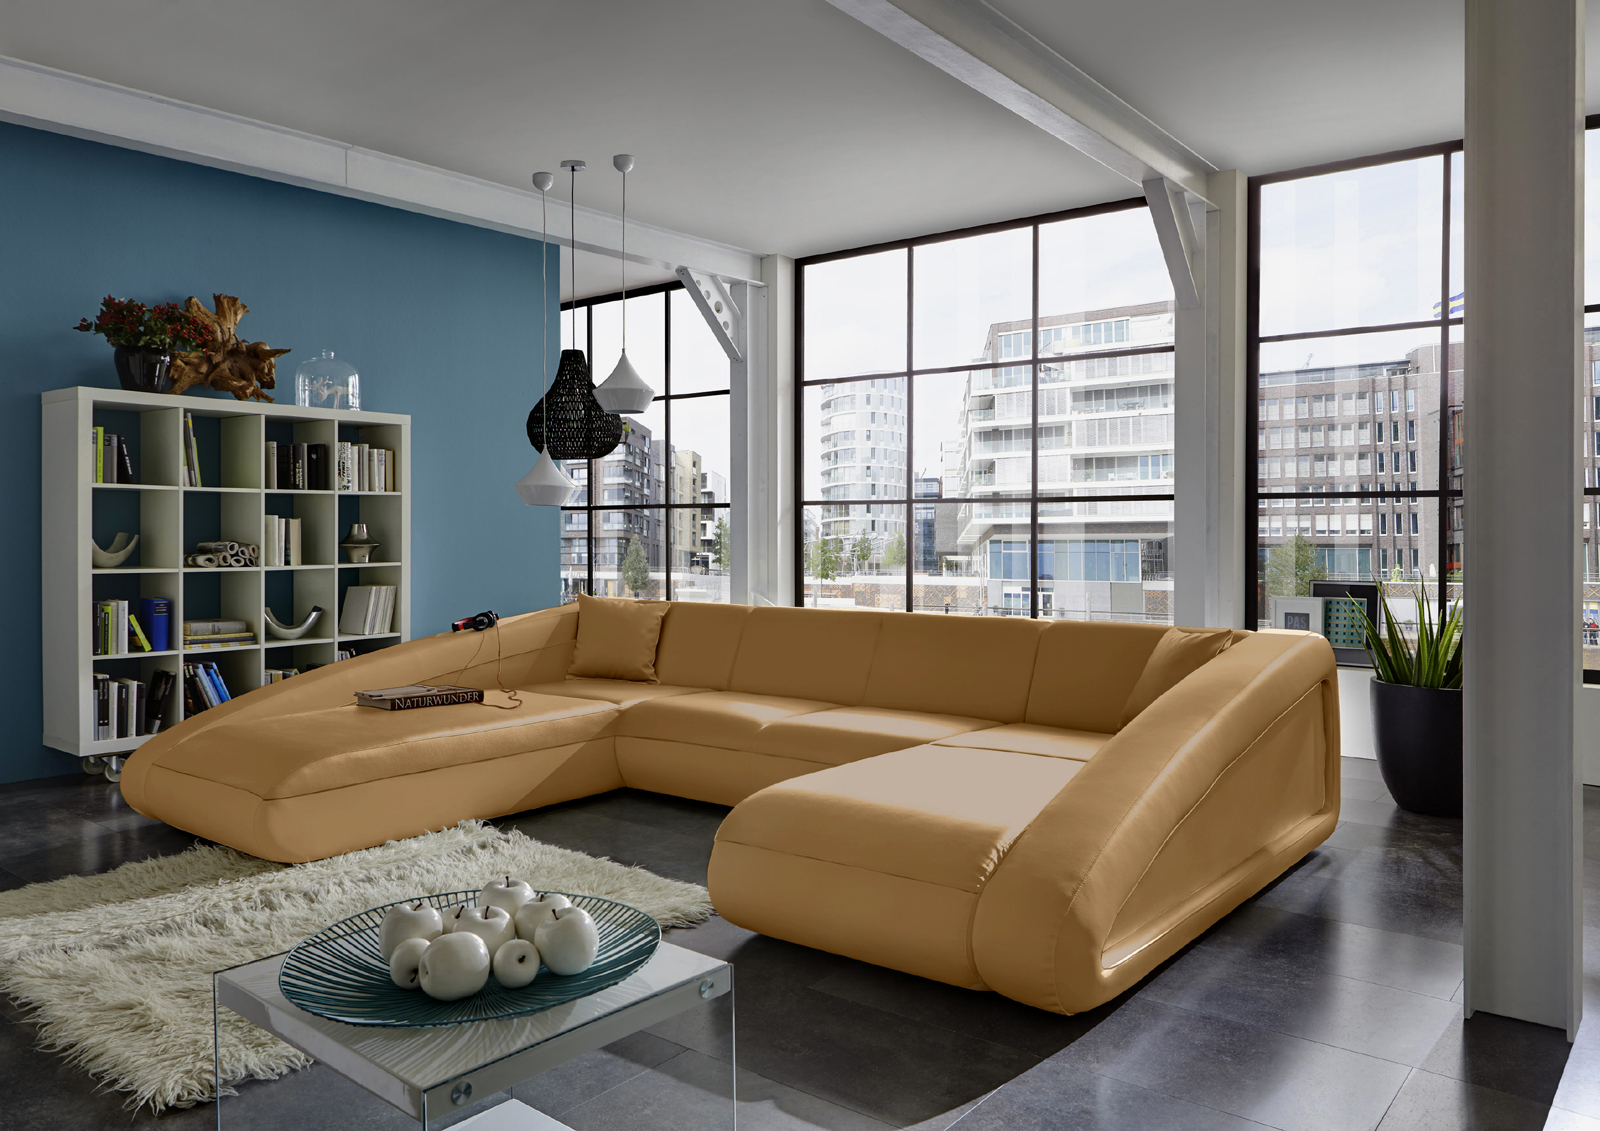 Sam wohnlandschaft farbauswahl sofa ciao 250 x 355 x 205 for Farbauswahl wohnung